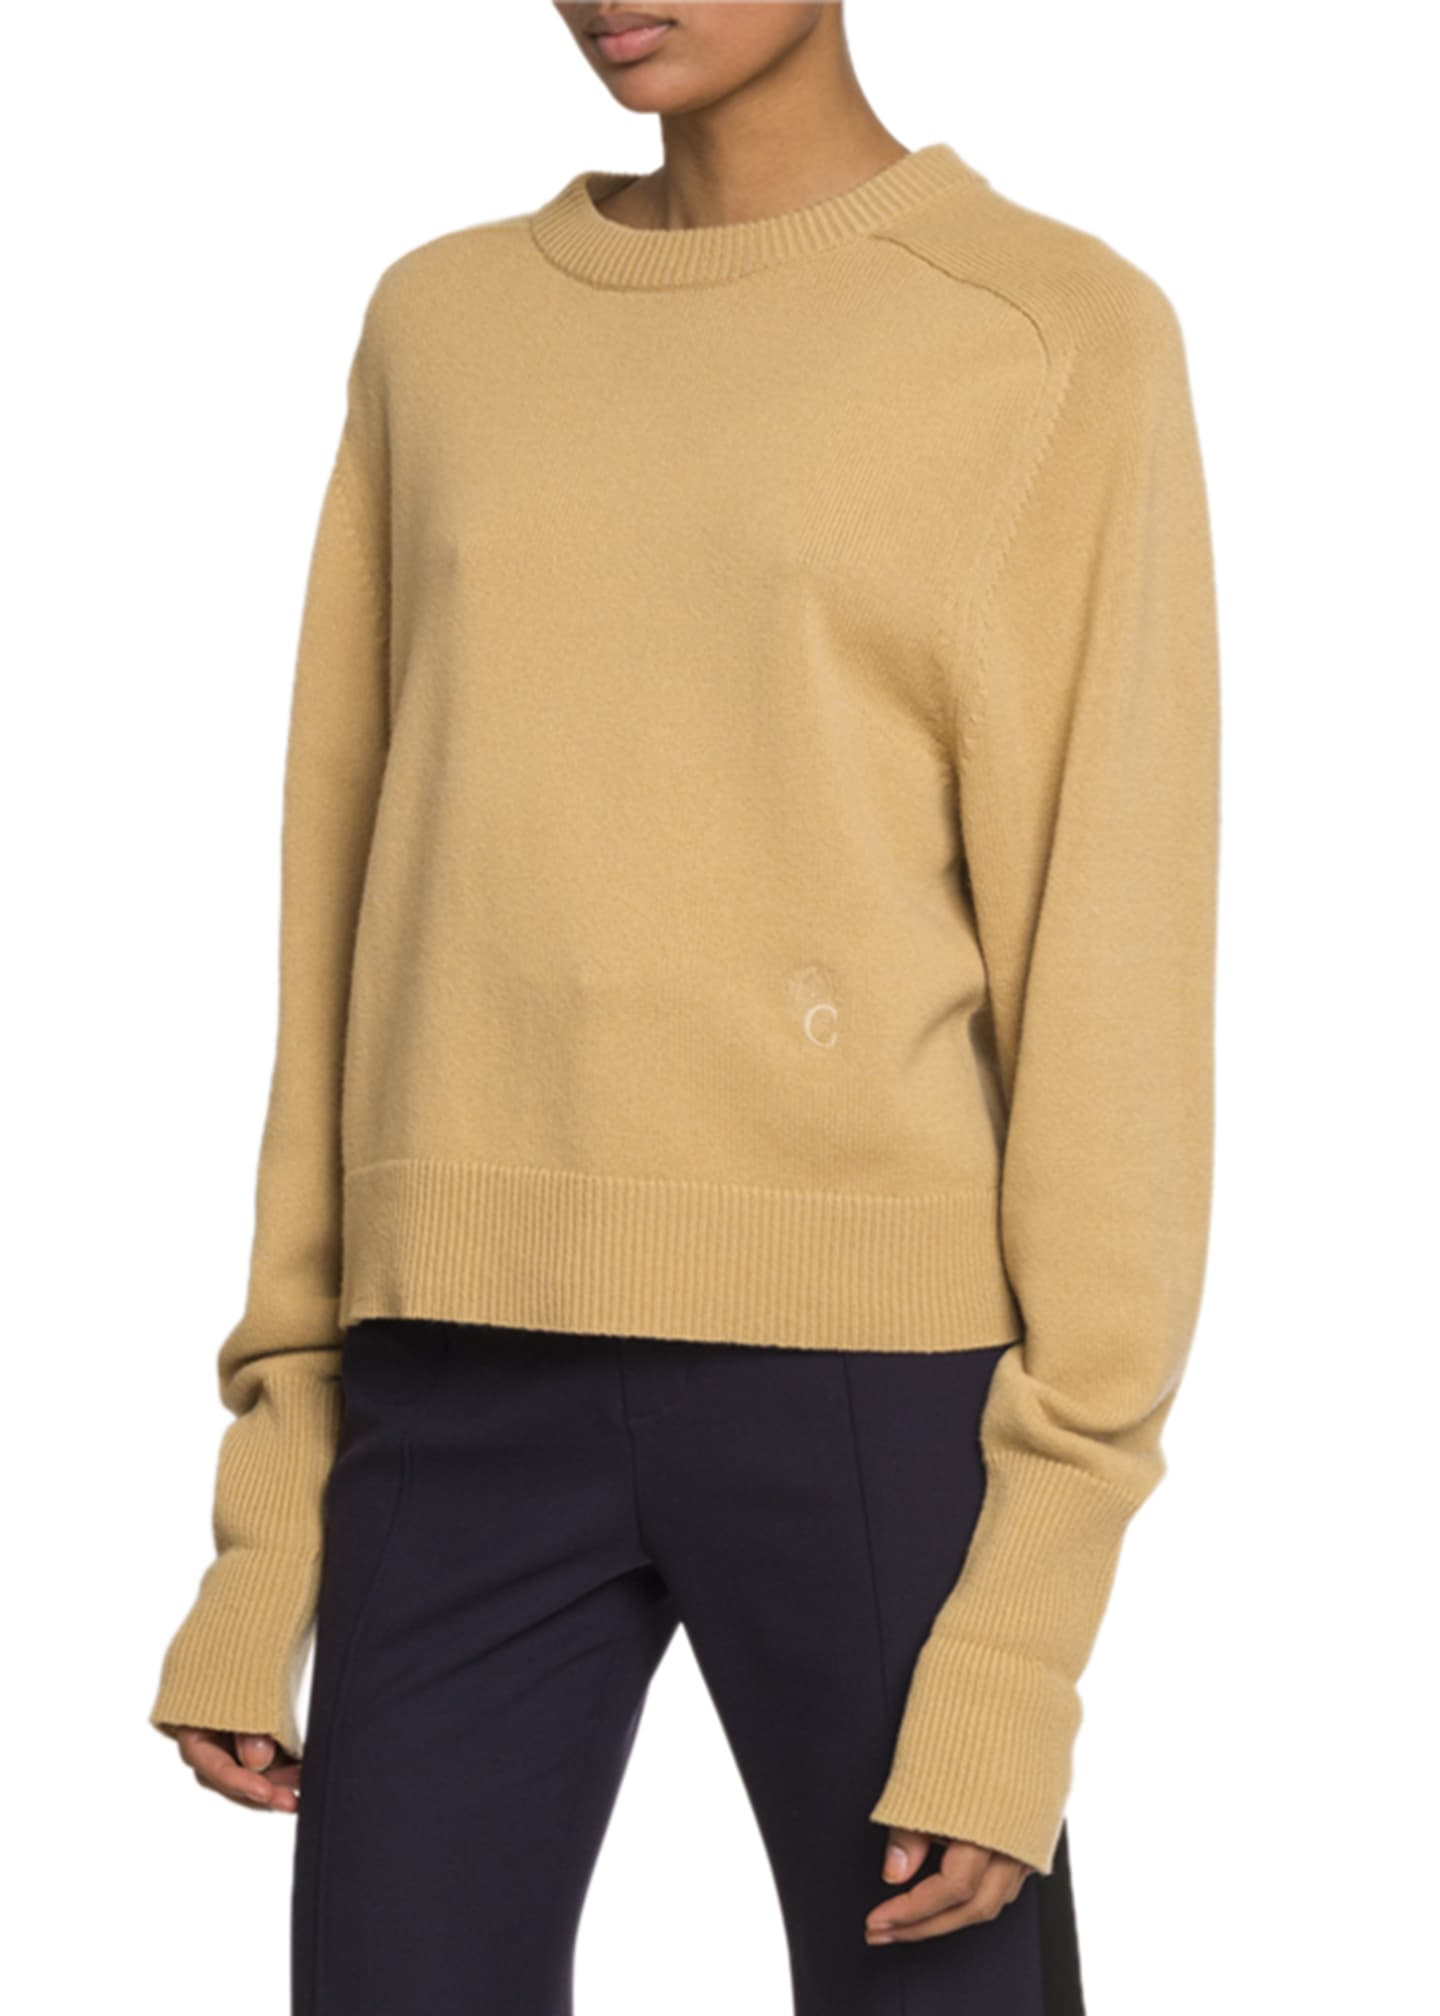 Chloe Long-Sleeve Crewneck Sweater